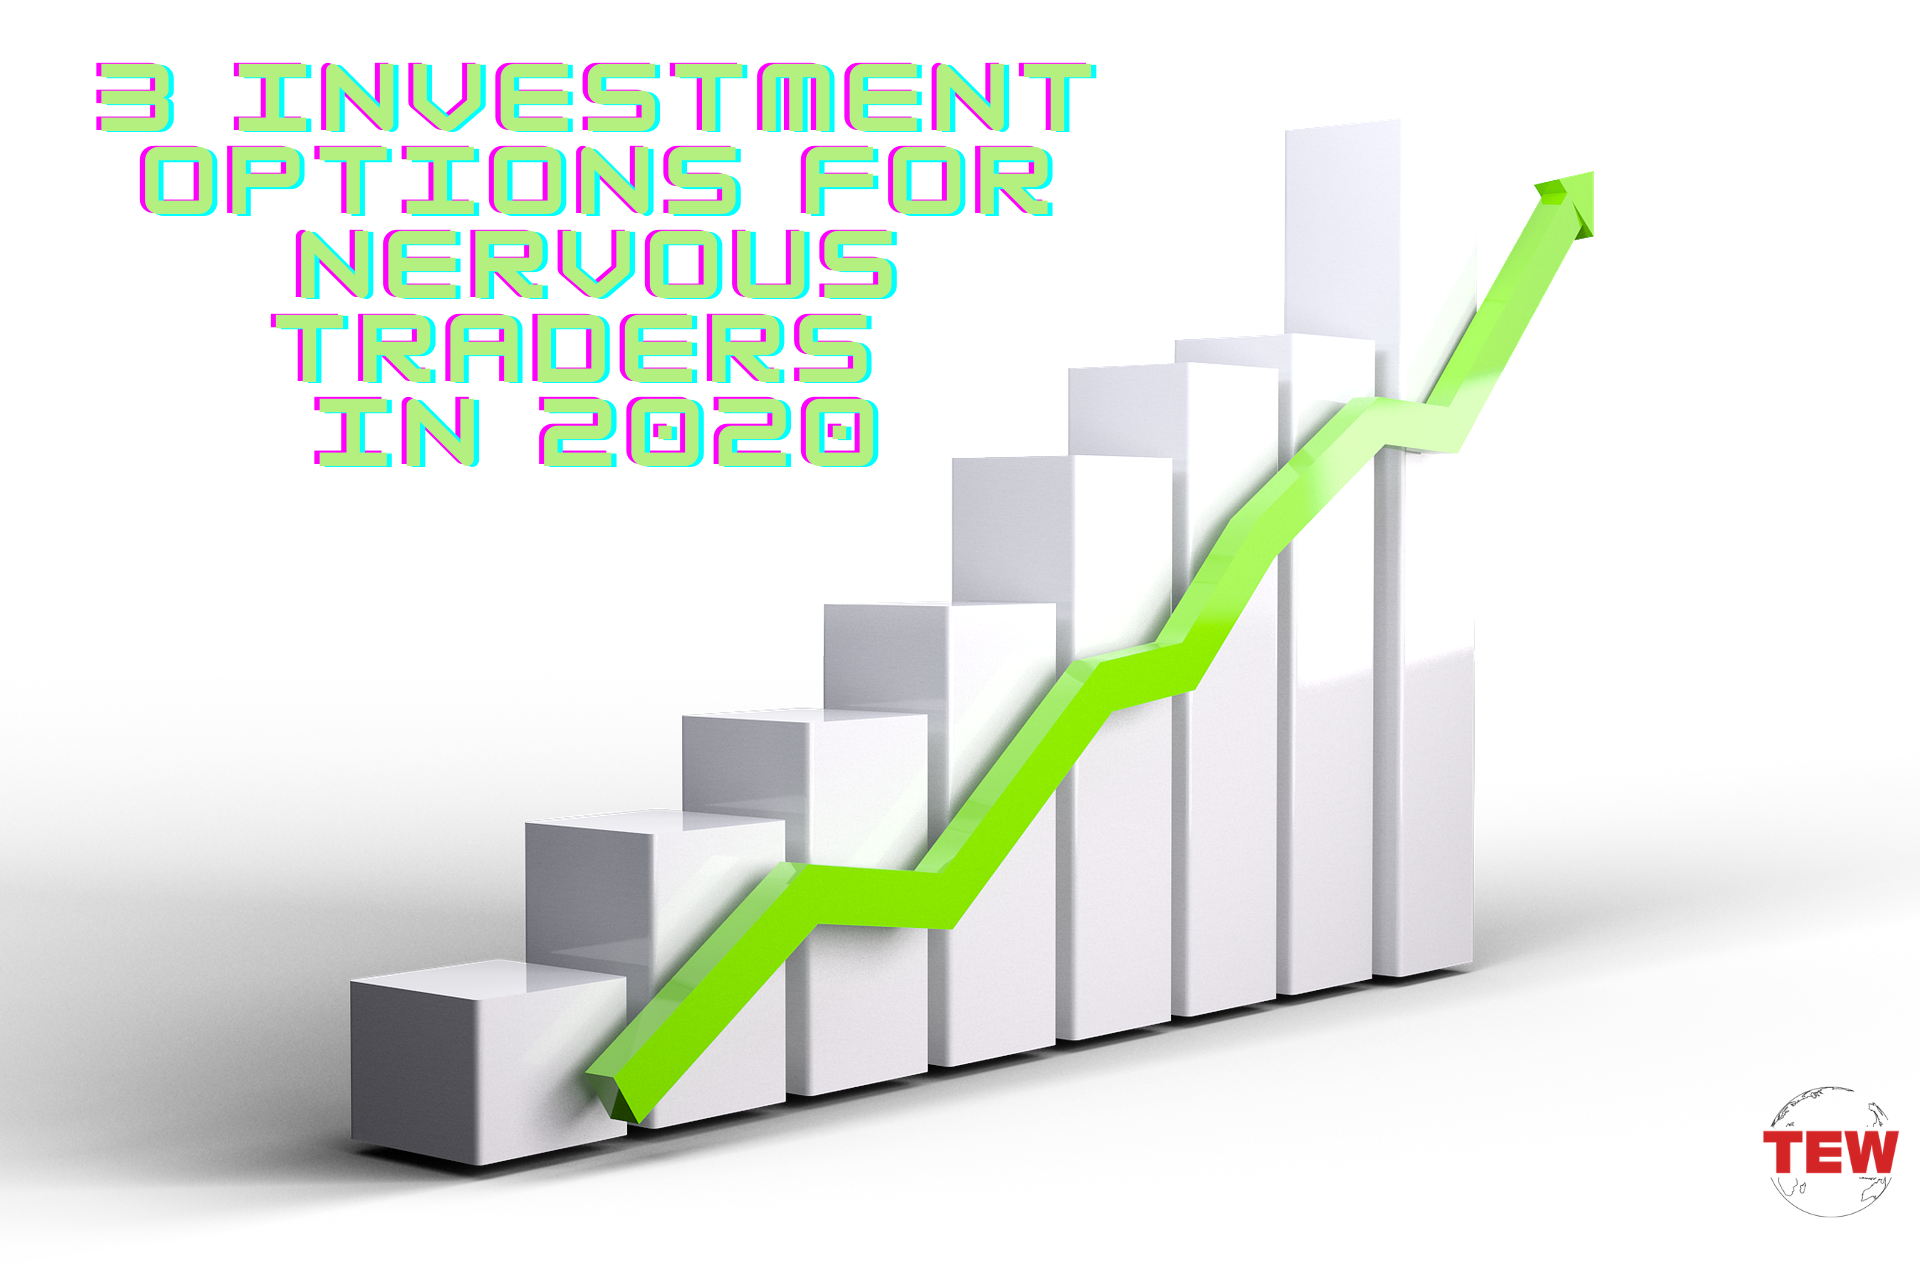 3 Investment Options for Nervous Traders in 2020